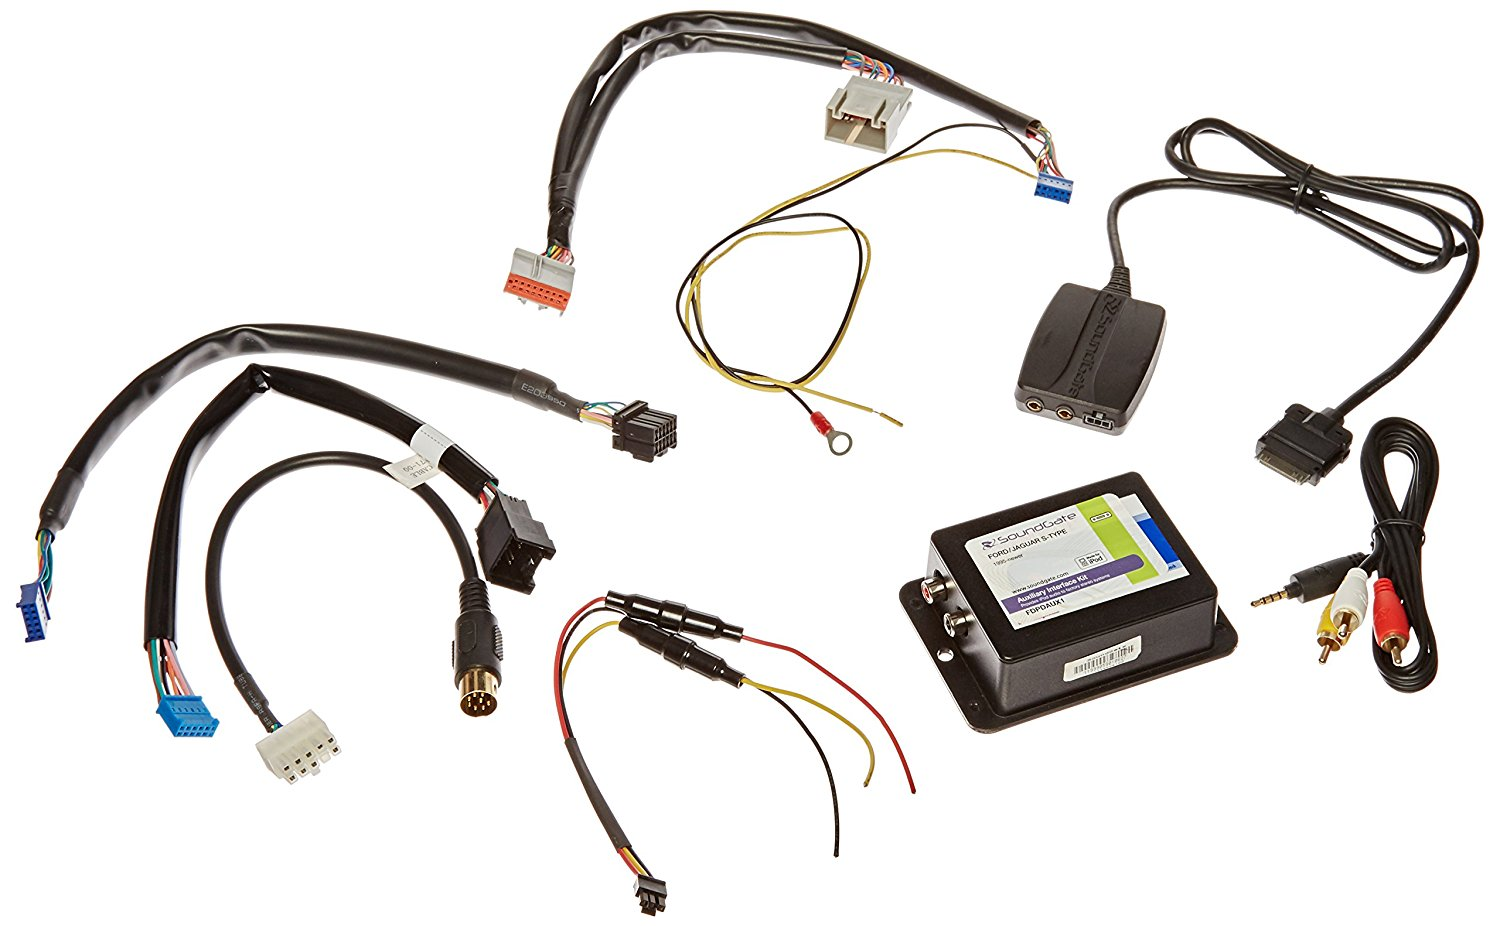 USA SPEC RCA Port for 99-05 FORD//LINCOLN iPod to Factory Radio Wired Music Interface with AUX PA11-FORD1